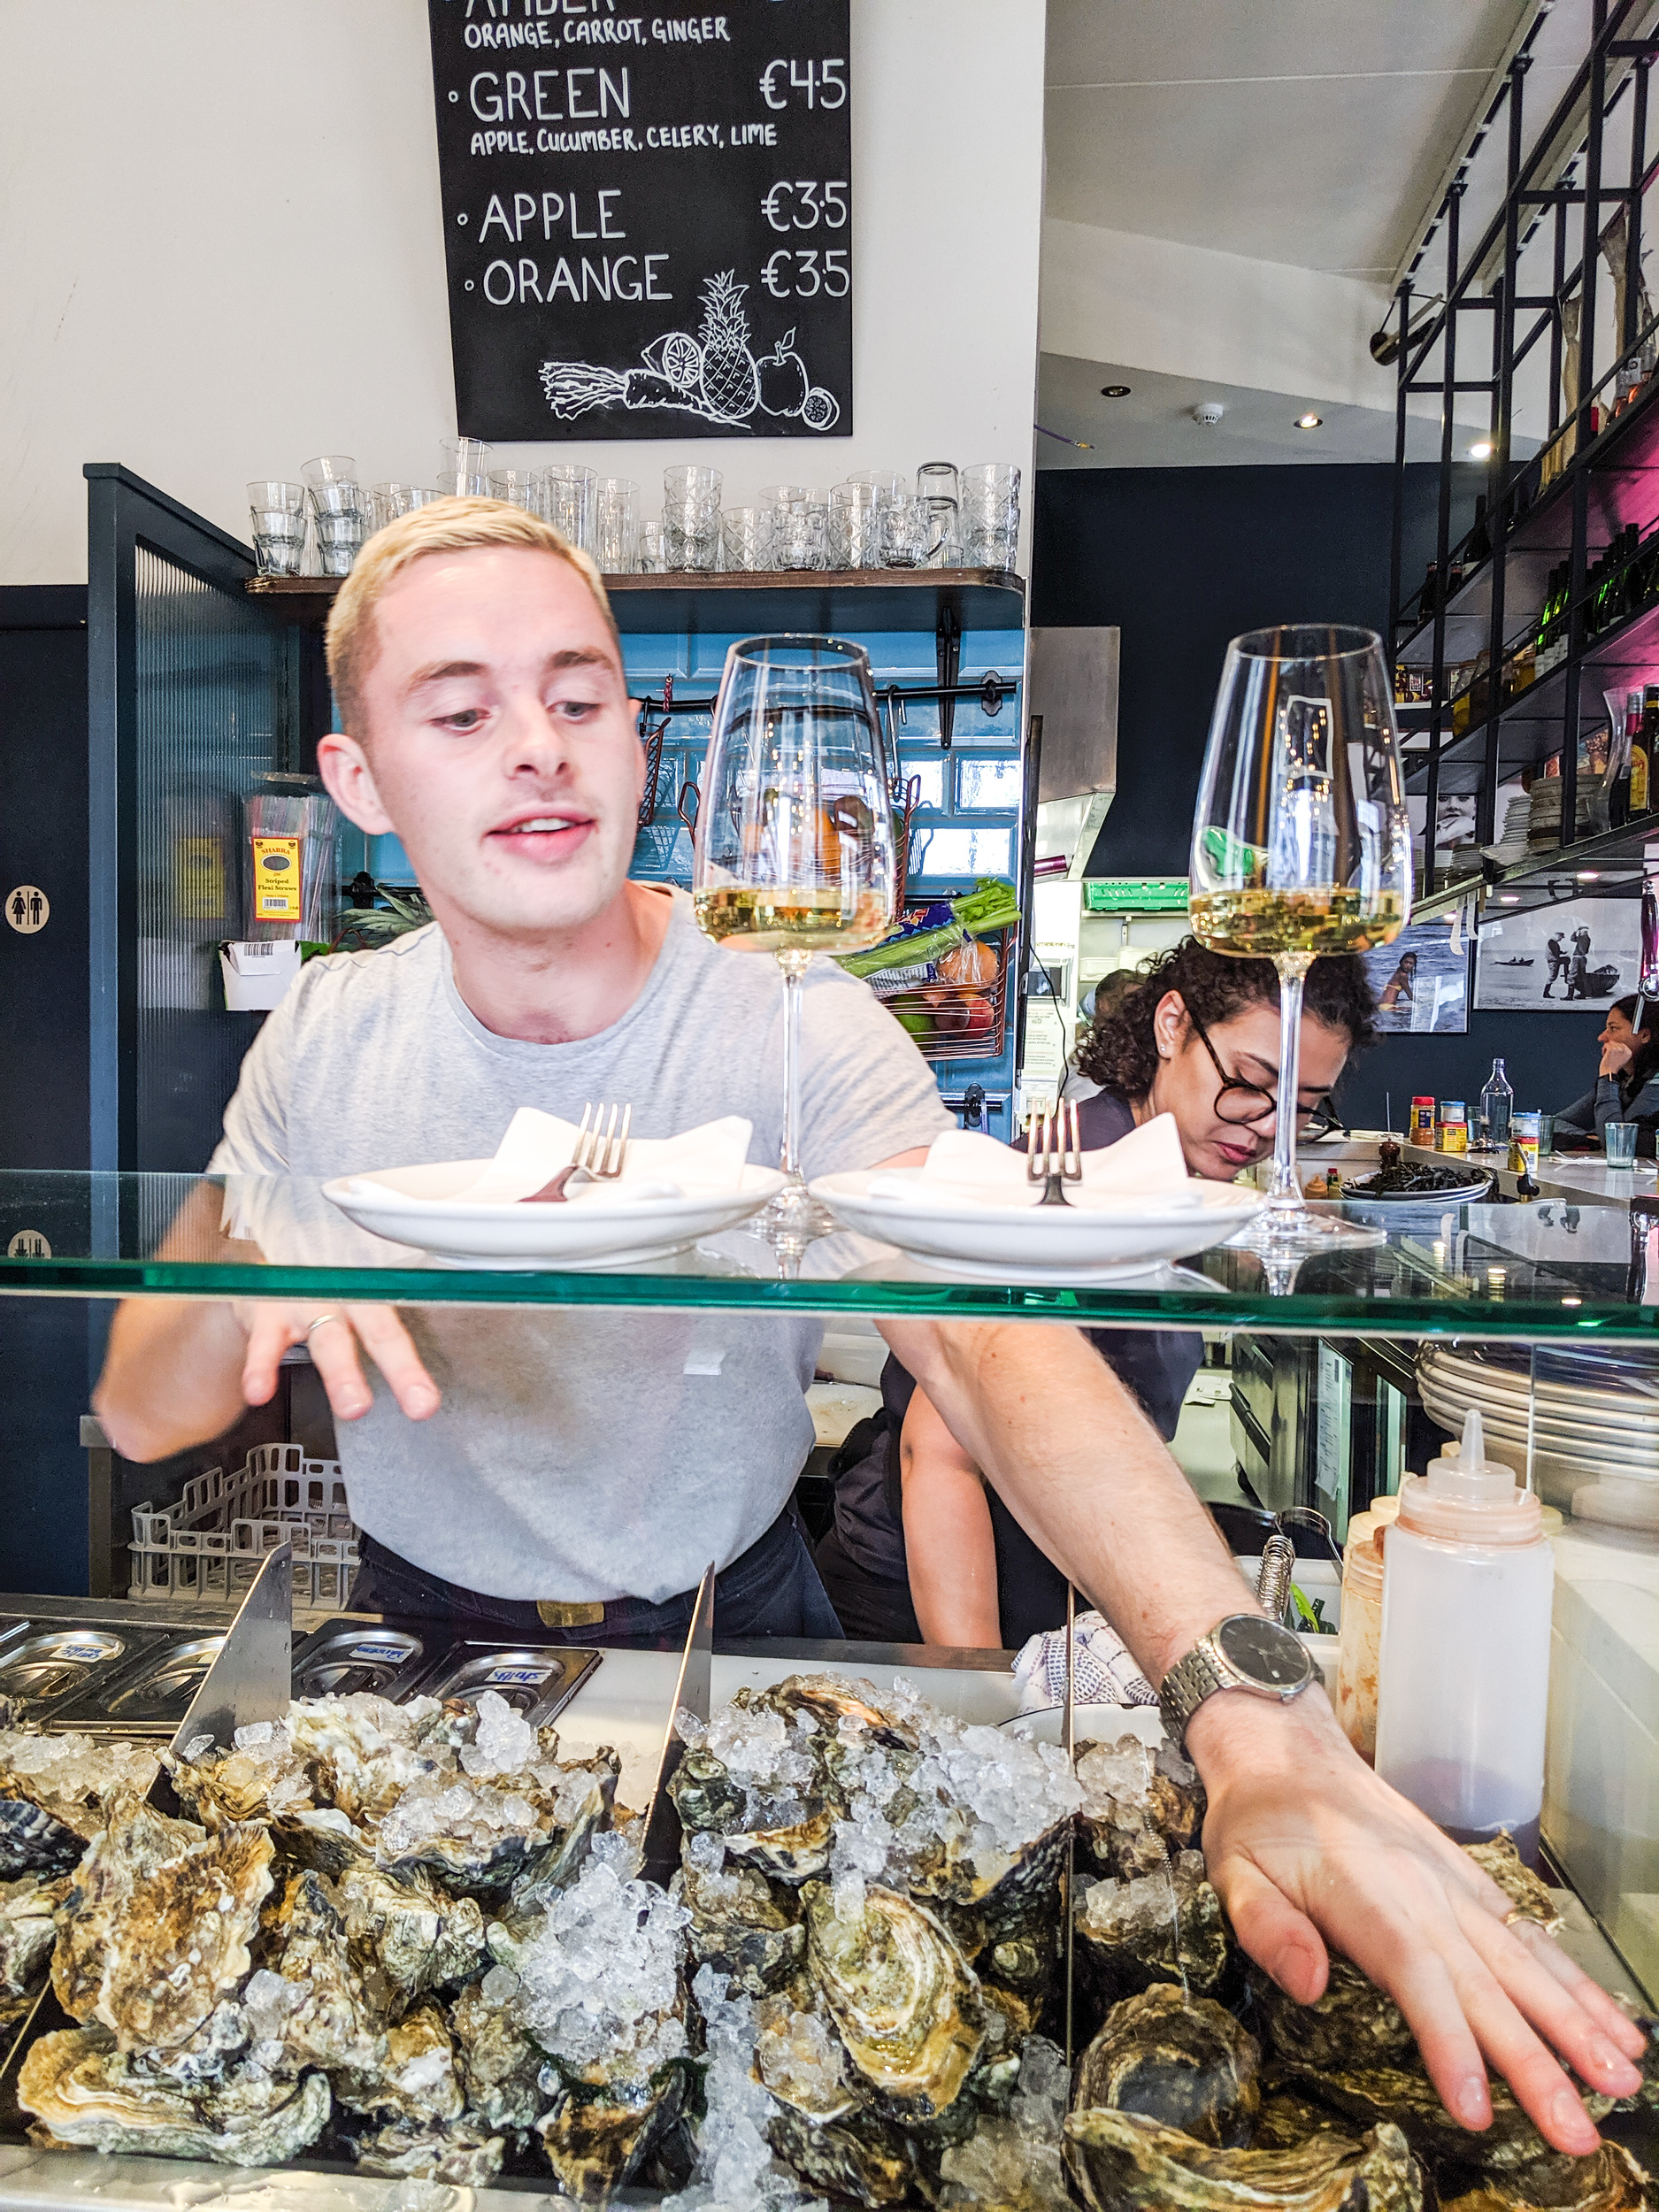 Shucker explaining oysters at a Dublin restaurant KLAW The Seafood Cafe